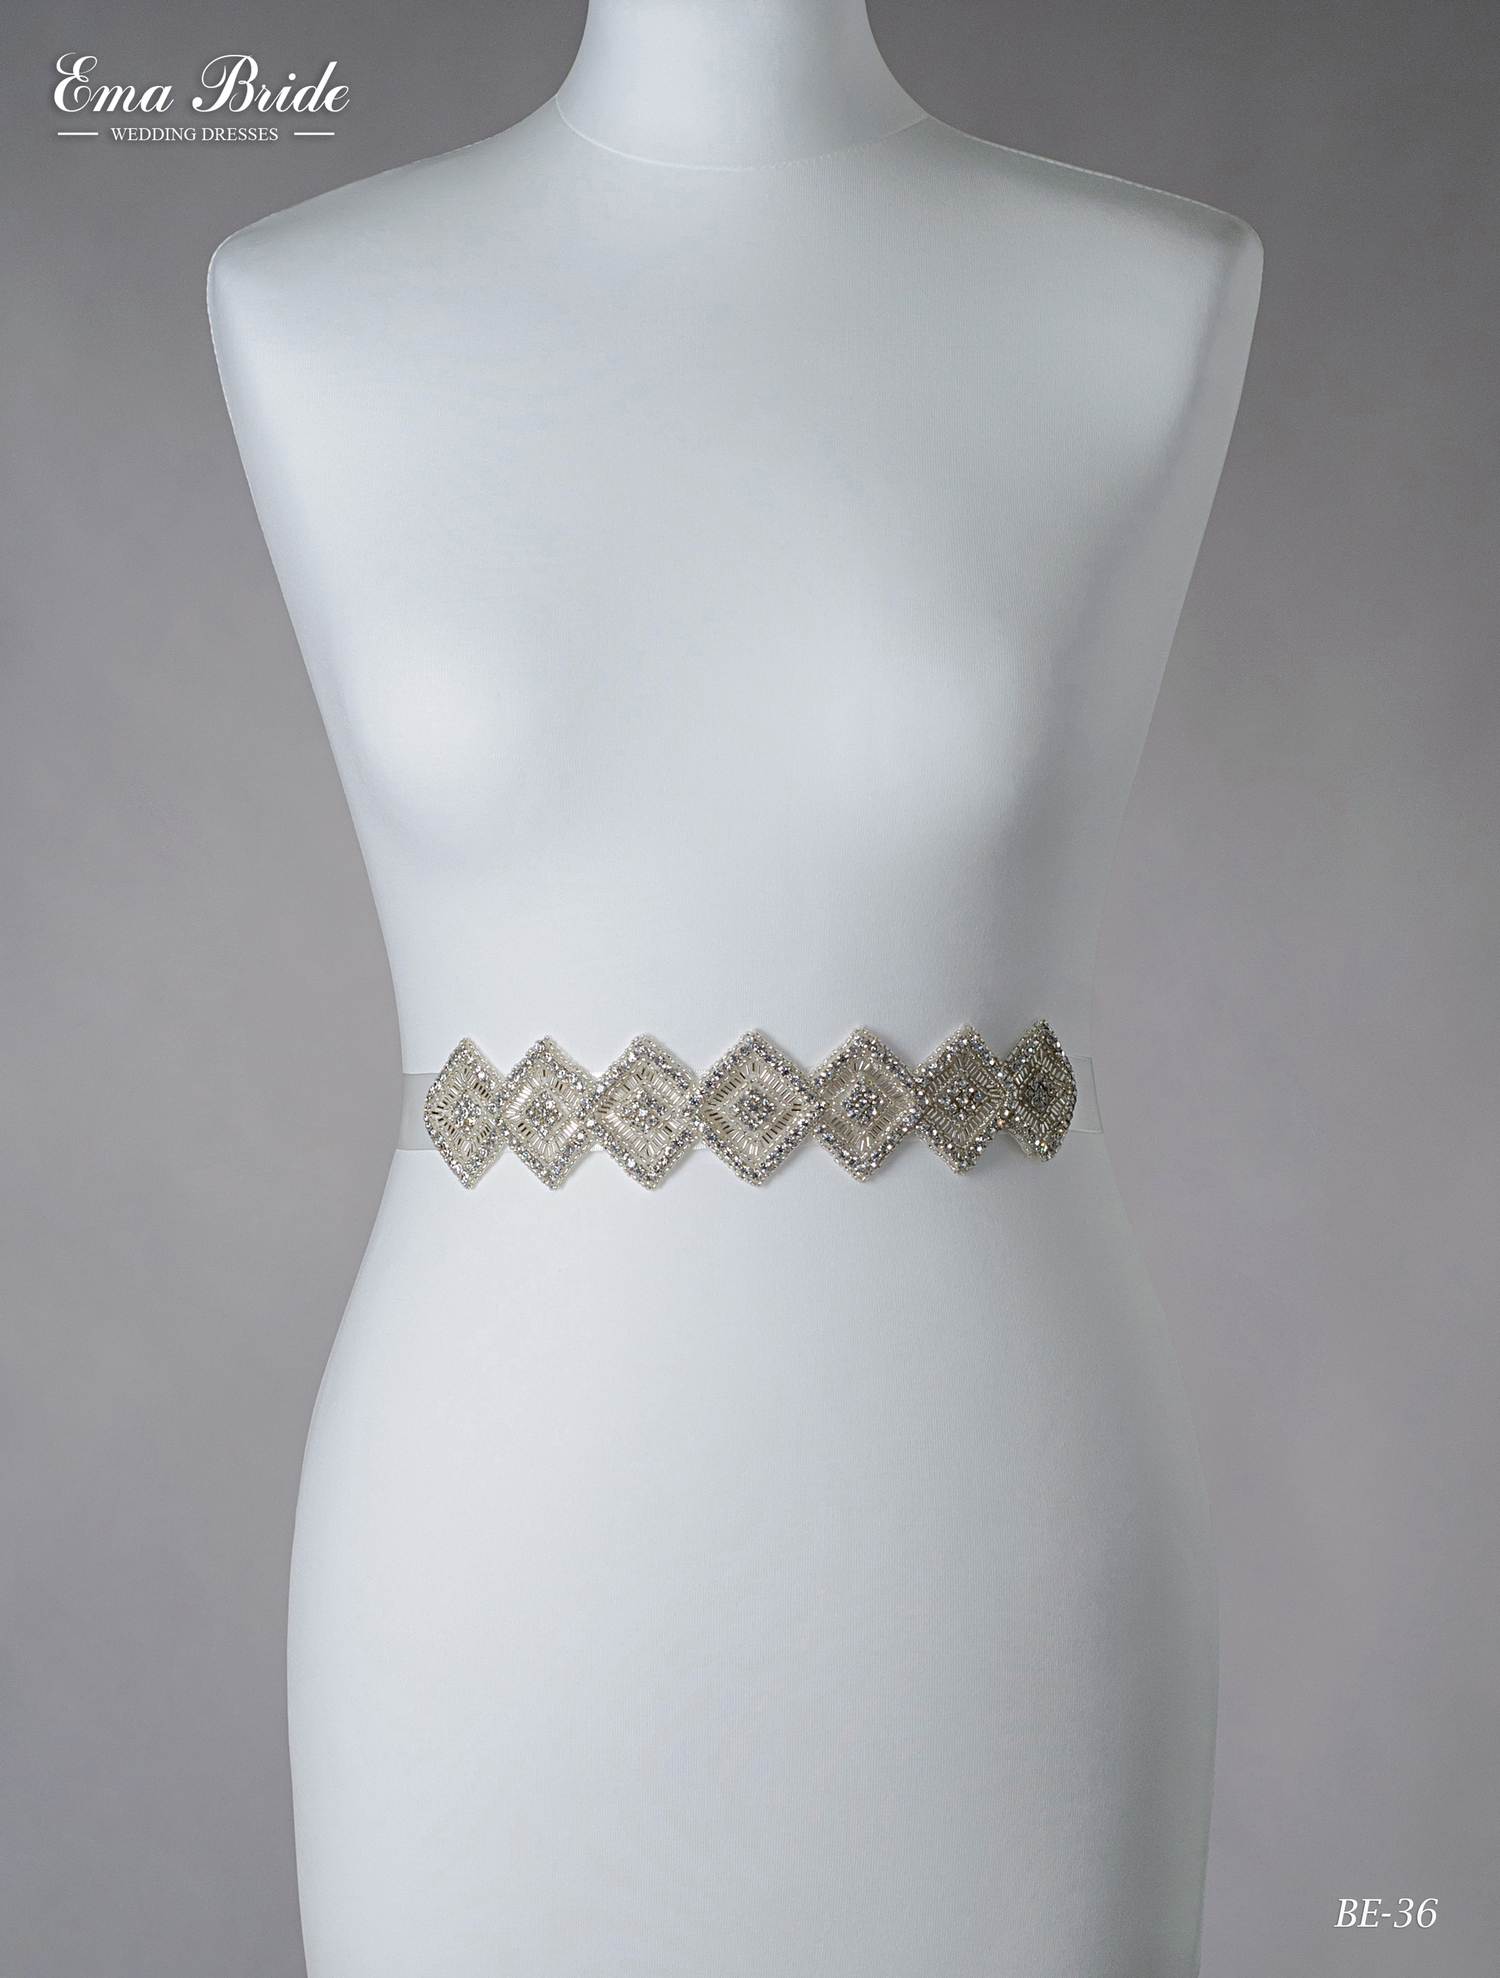 A belt for a wedding dress Be-36